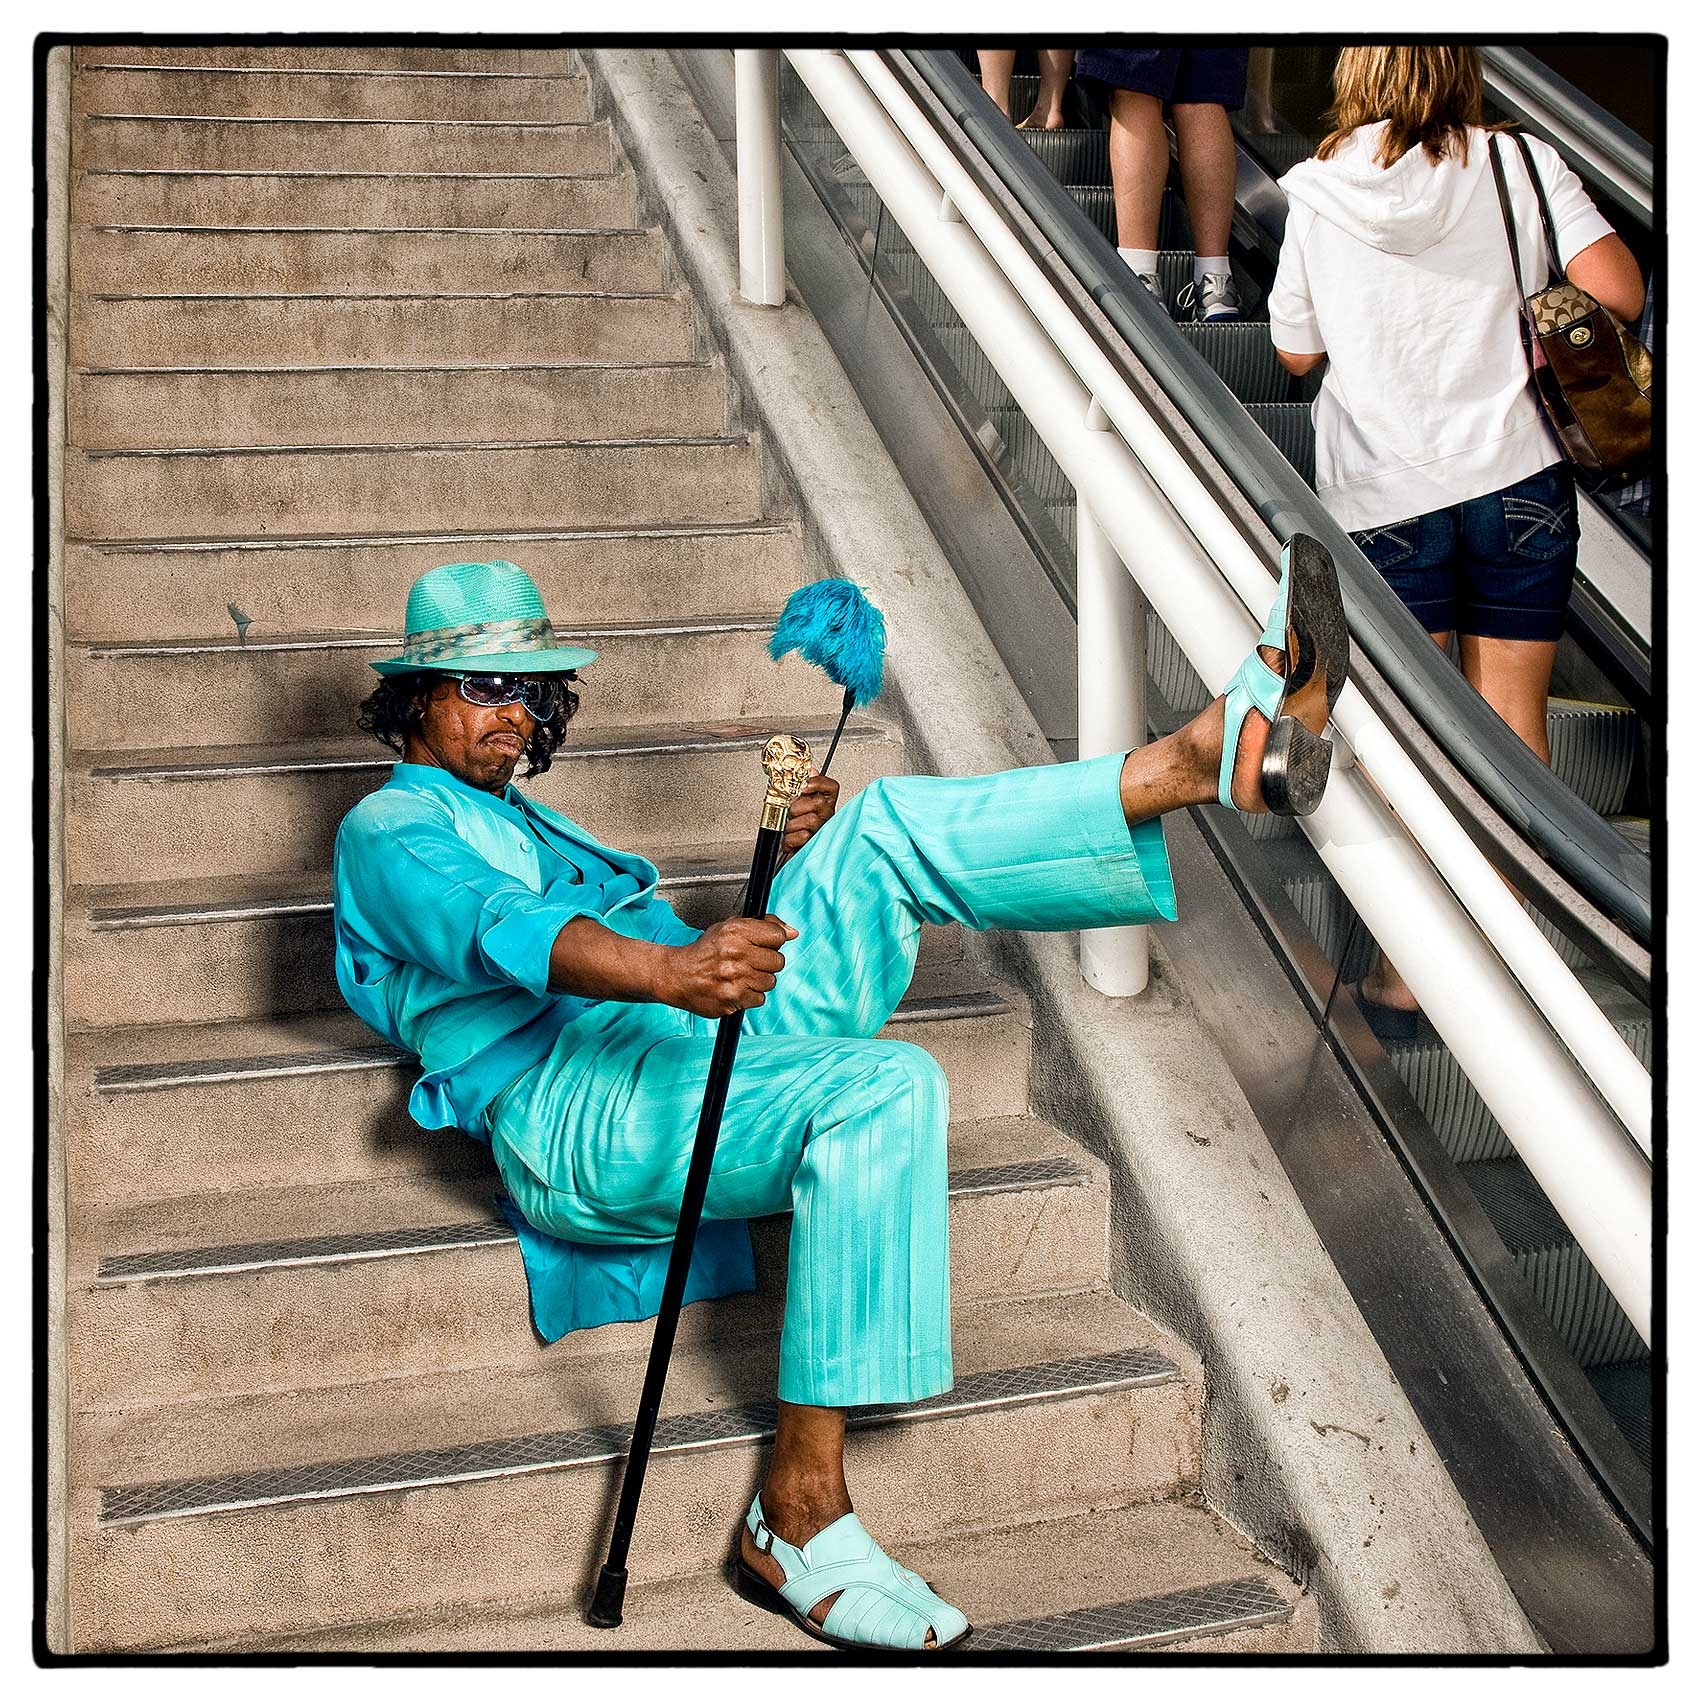 a-colourful-character-poses-for-a-photo-on-the-streets-of-las-vegas